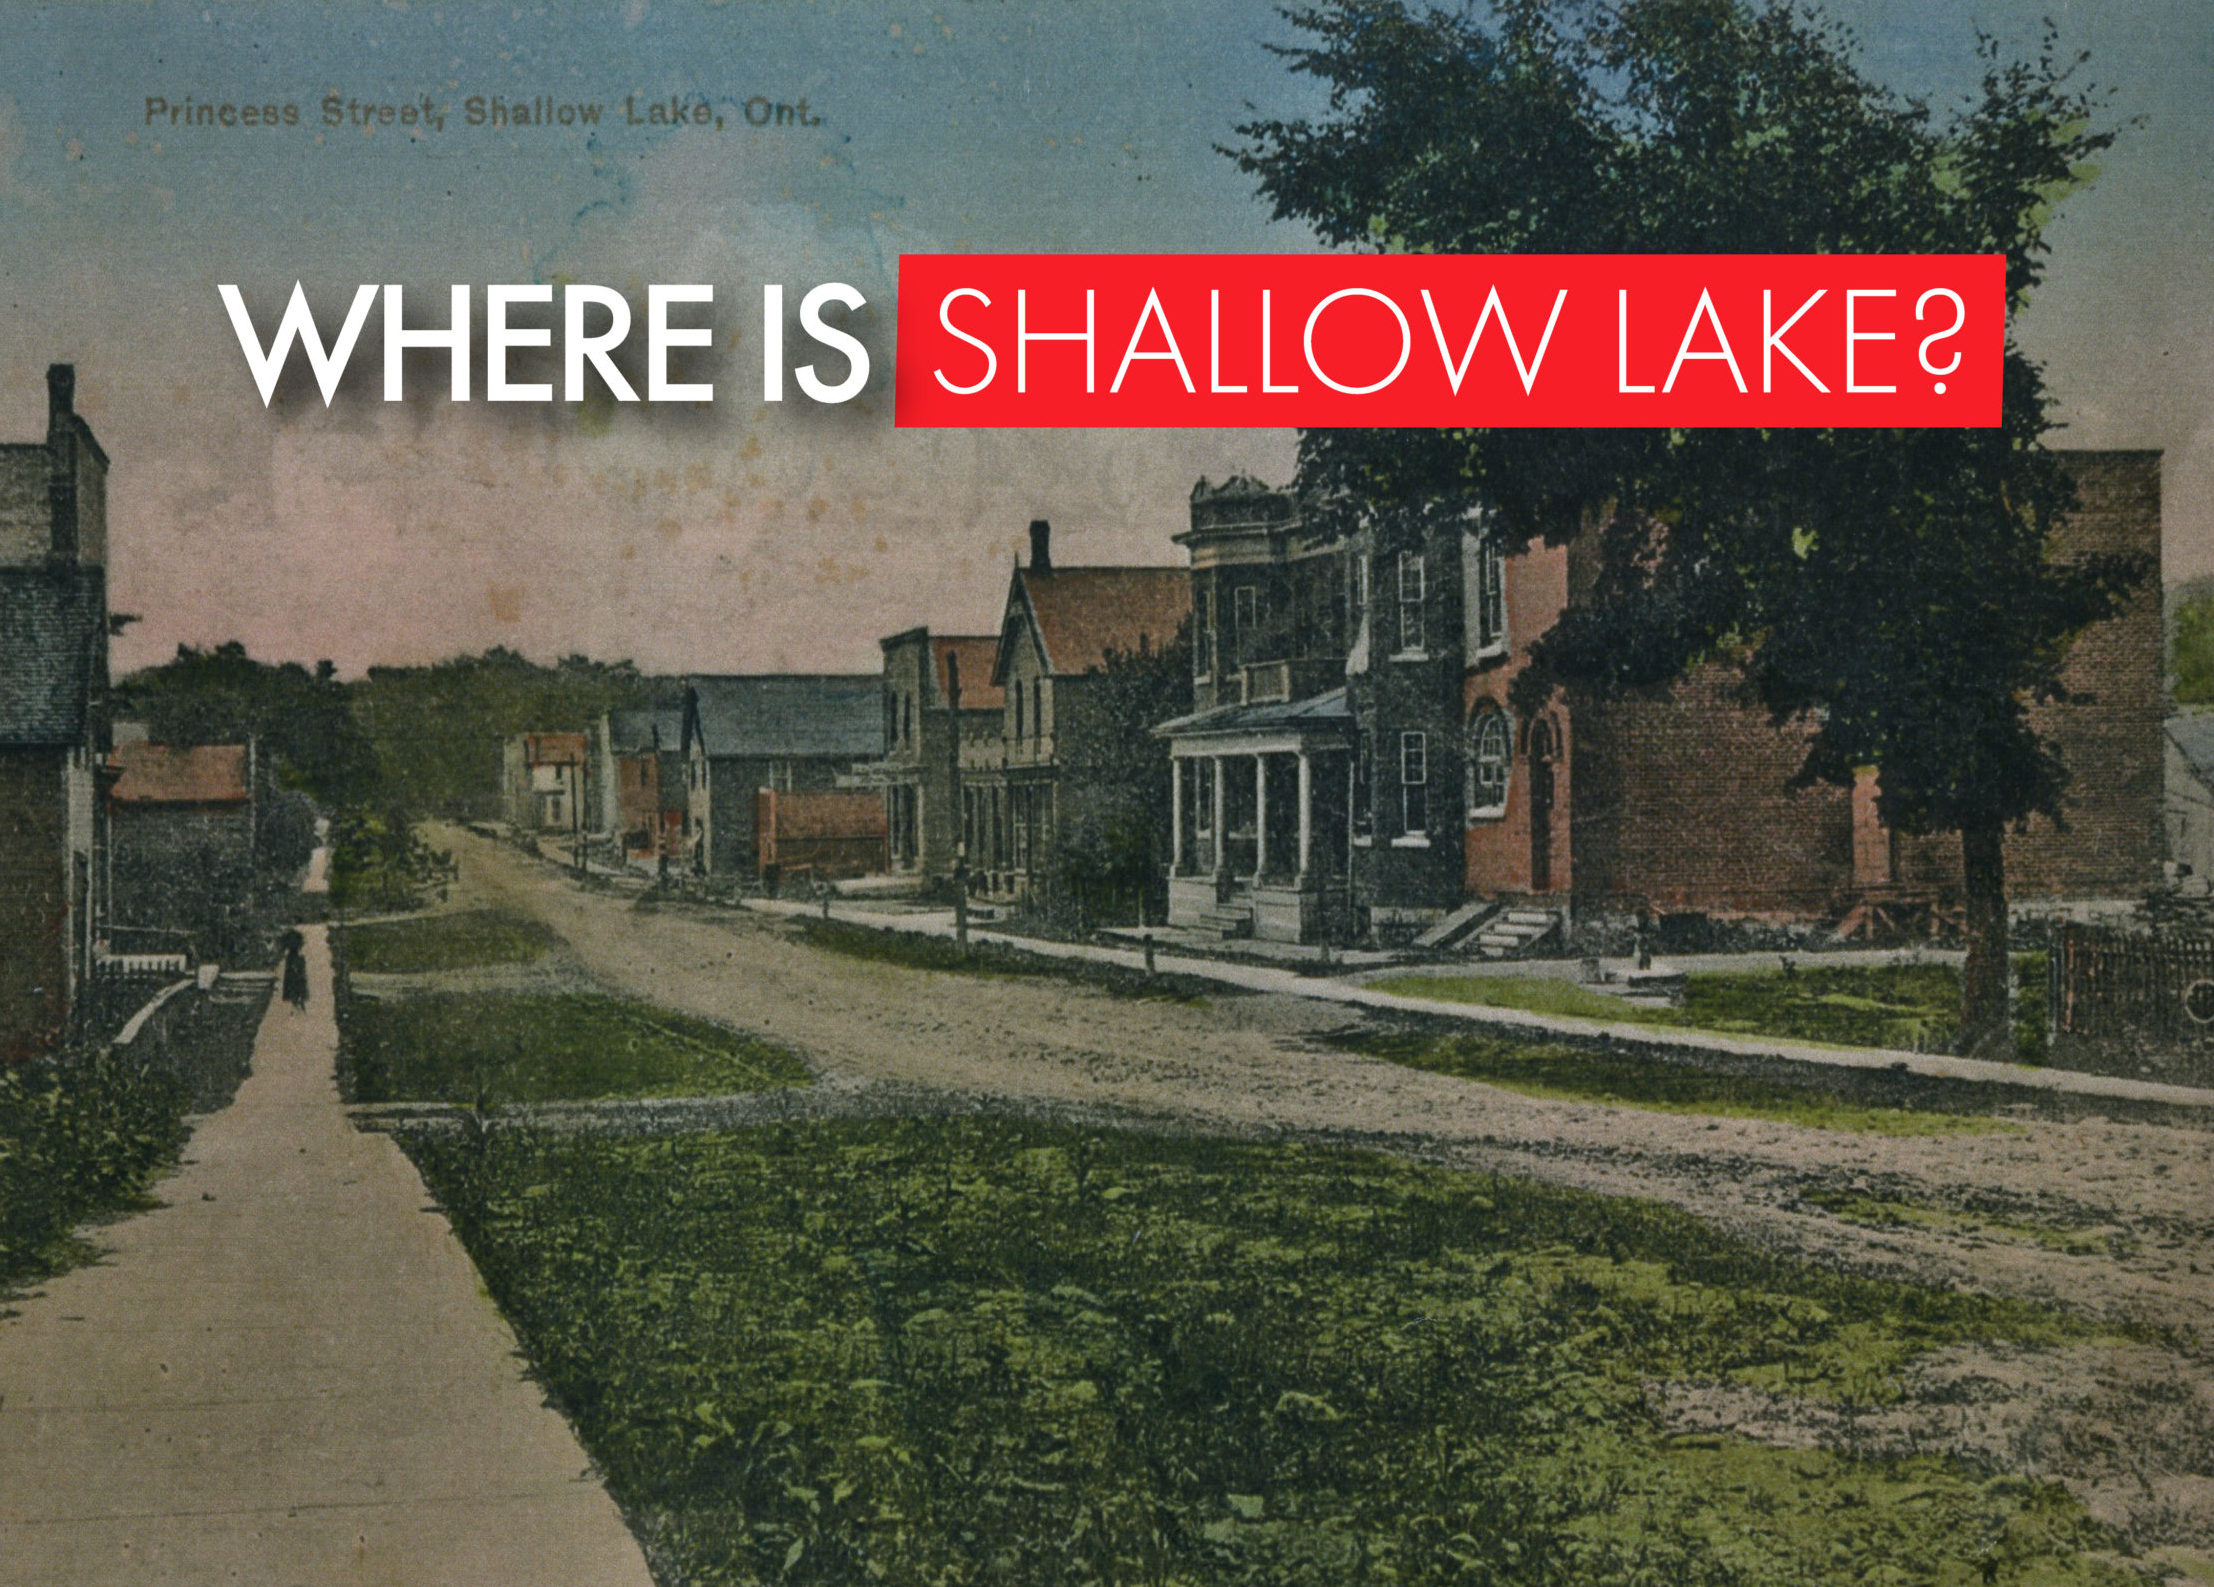 Where is Shallow Lake